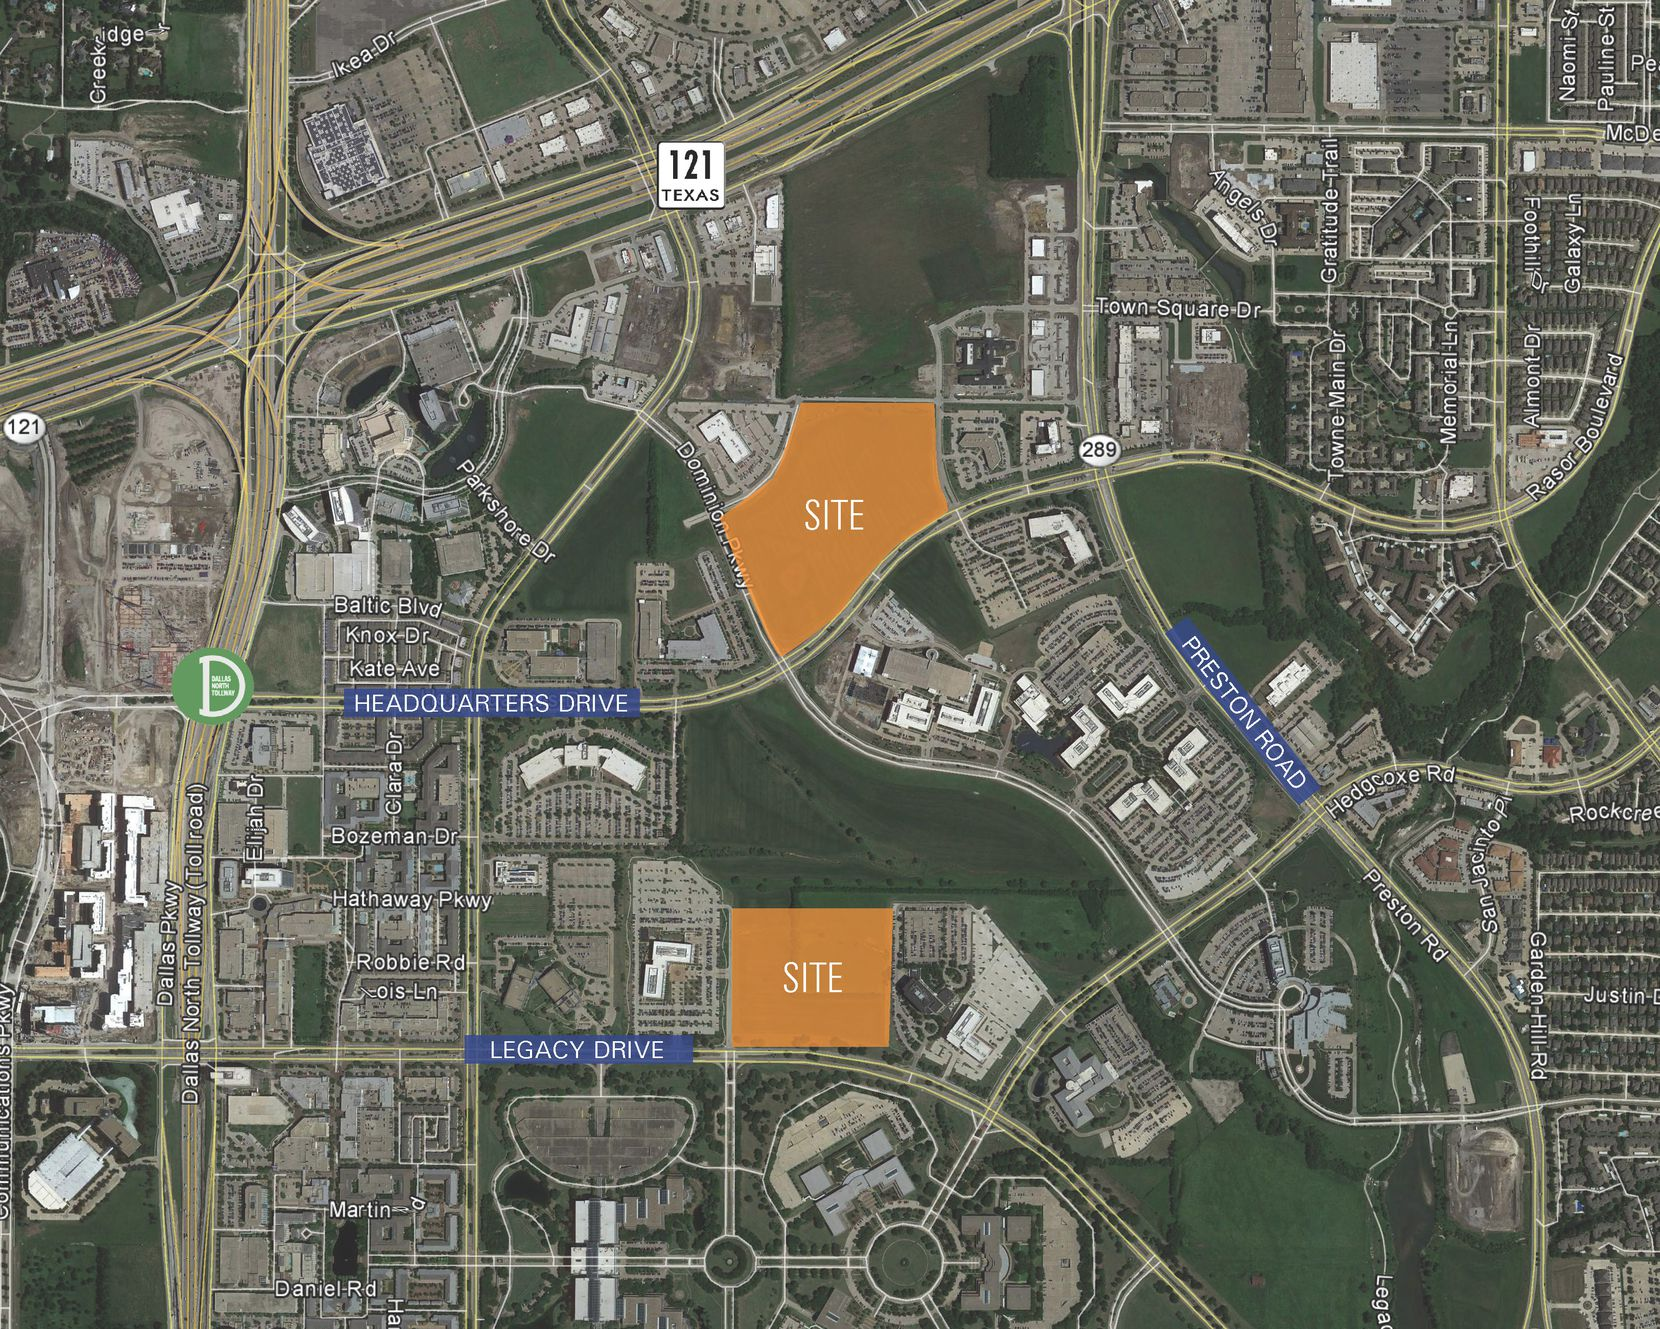 The properties for sale are east of the Dallas North Tollway in Legacy business park.